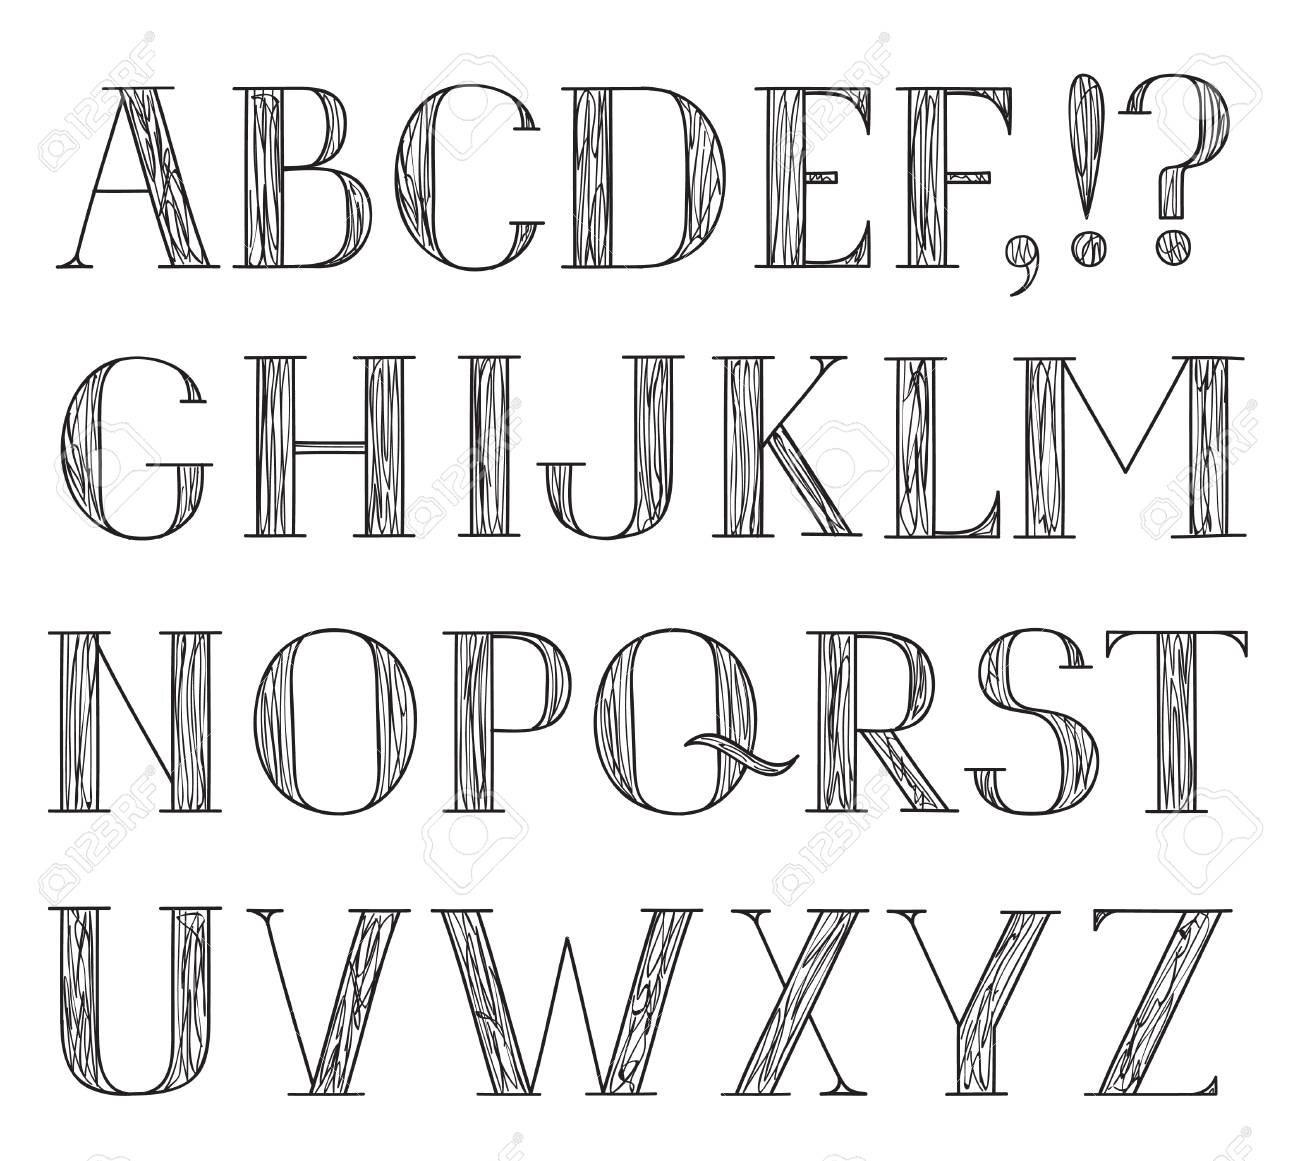 Alphabet Grunge Line Pencil Drawing Decorative Font Hipsters